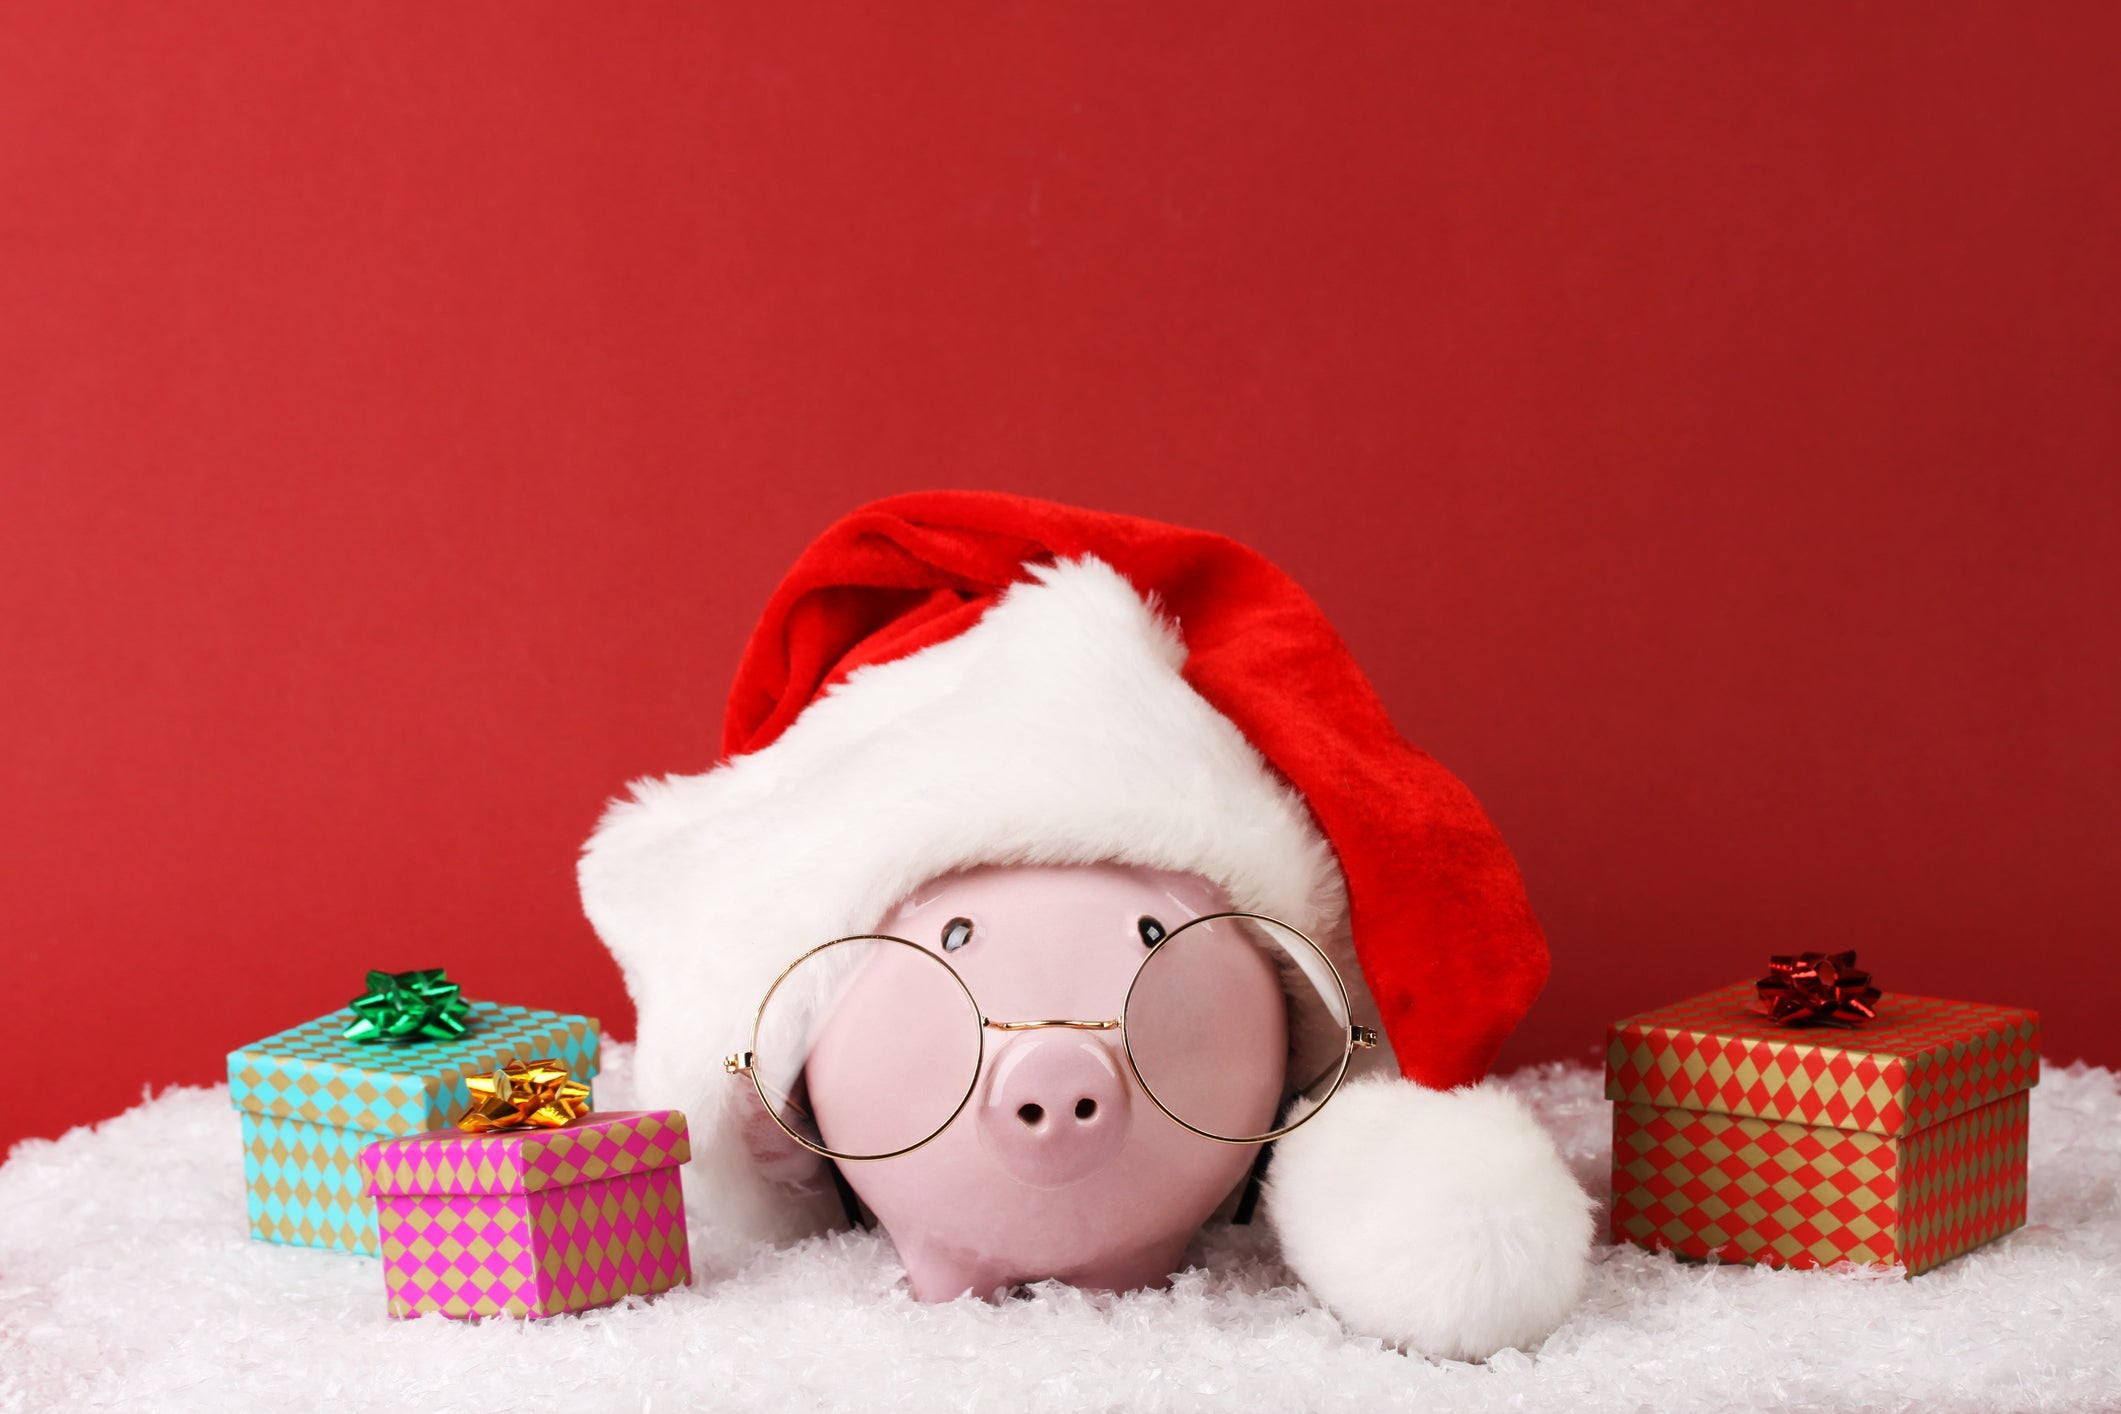 How to Buy Stocks as Gifts -- and My Two Top Recommendations | The Motley Fool